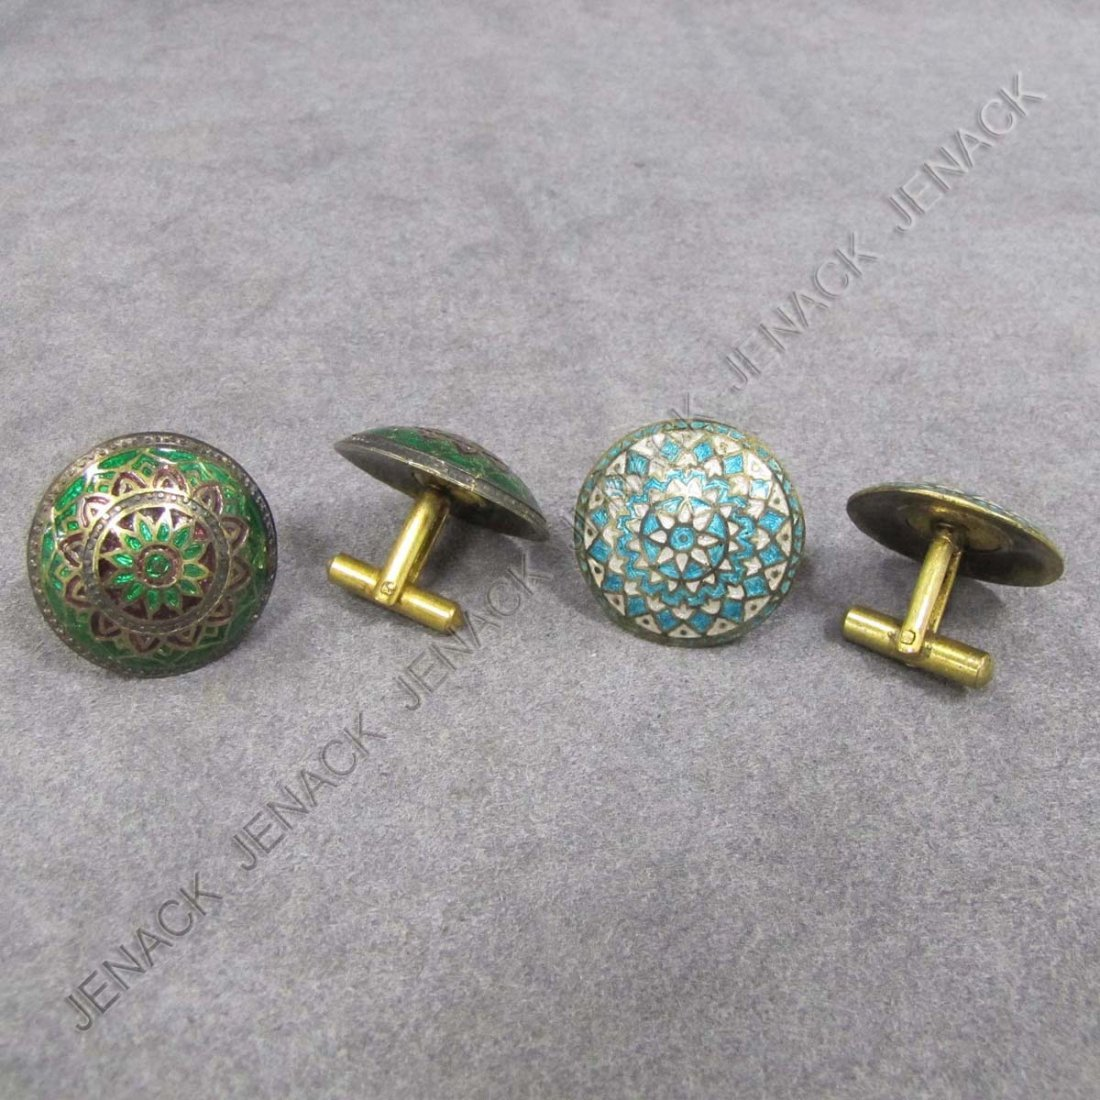 12: LOT (2) PAIR GILT SILVER ENAMELED CUFFLINKS